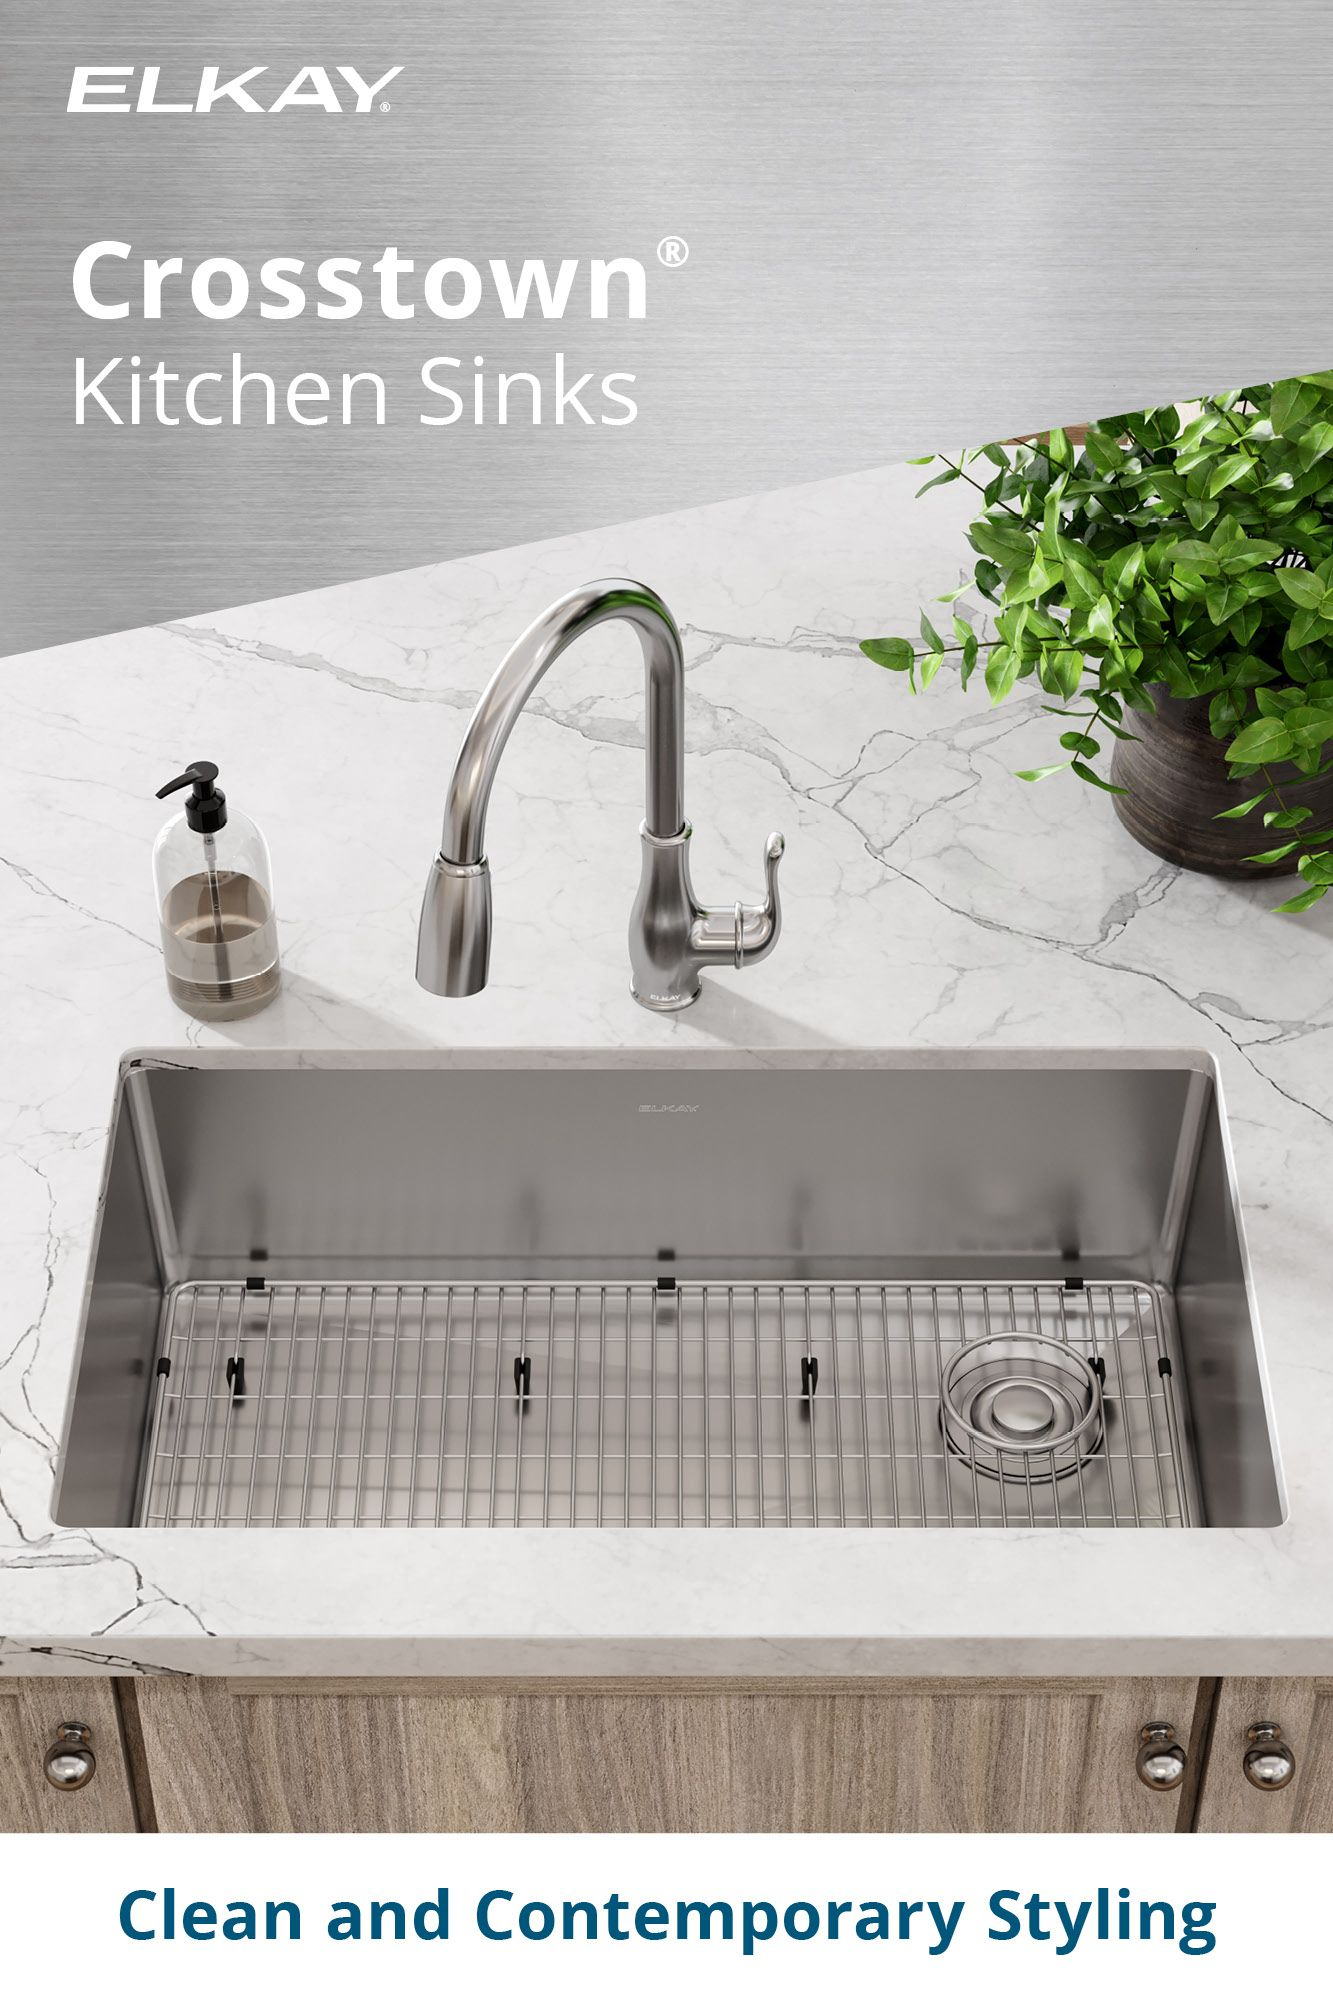 High Quality Crosstown Sinks In 2021 Sink Kitchen Remodel Small Kitchen Space Savers